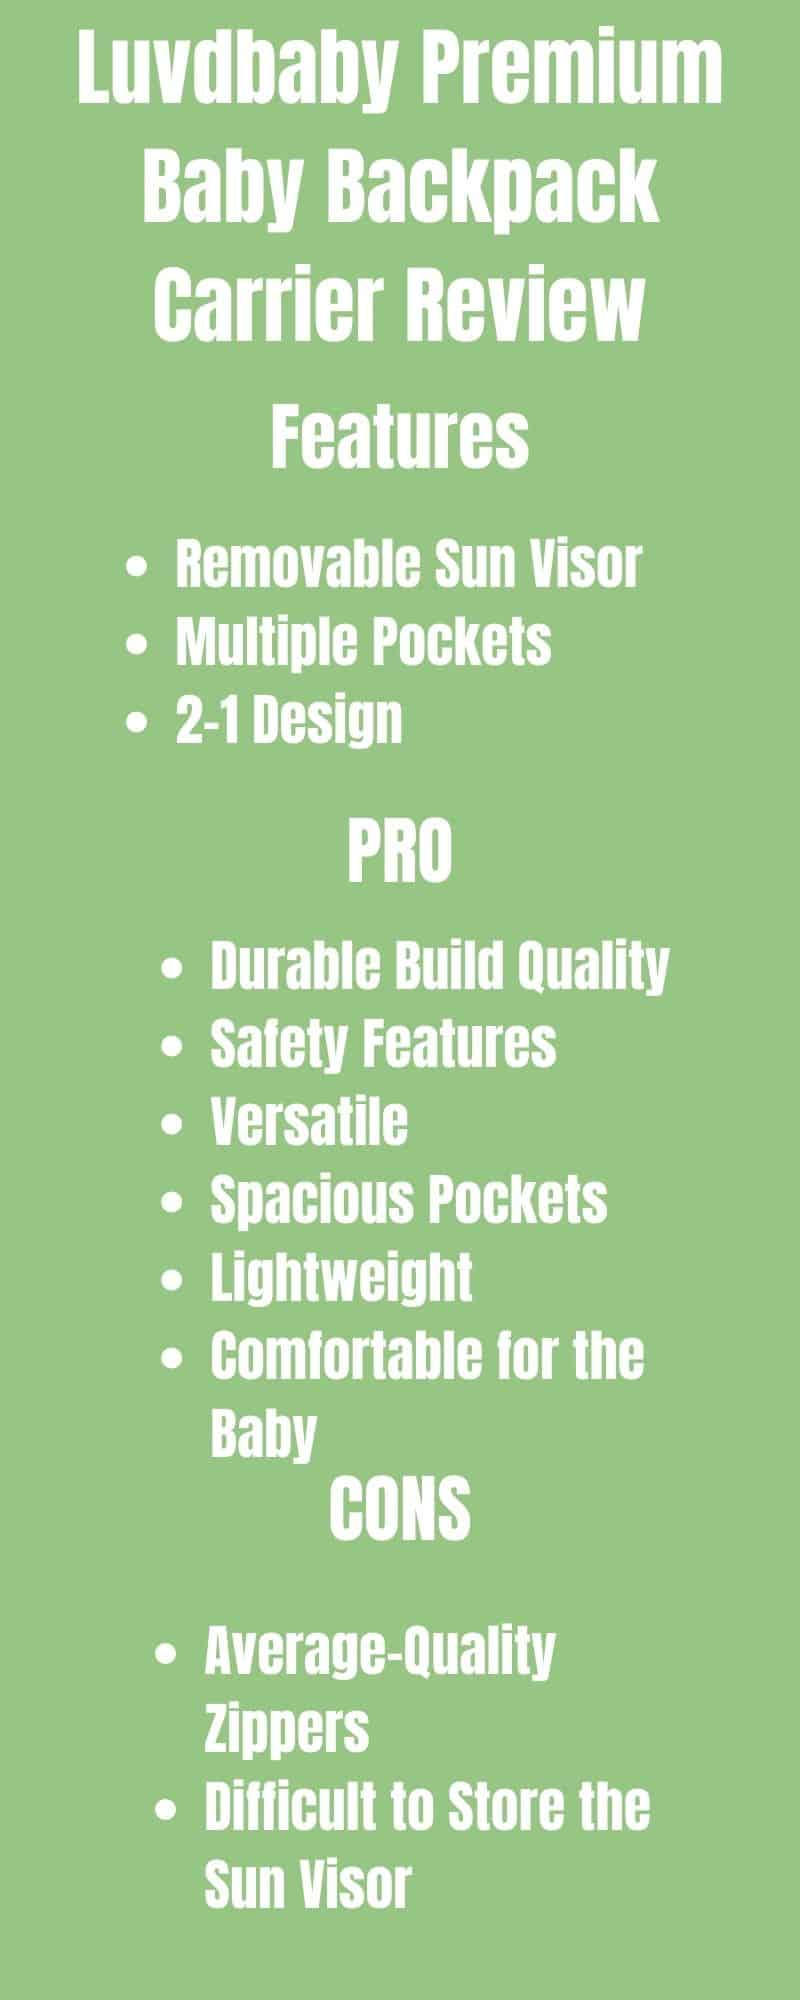 An infographic Review Of Luvdbaby Premium Baby Backpack Carrier